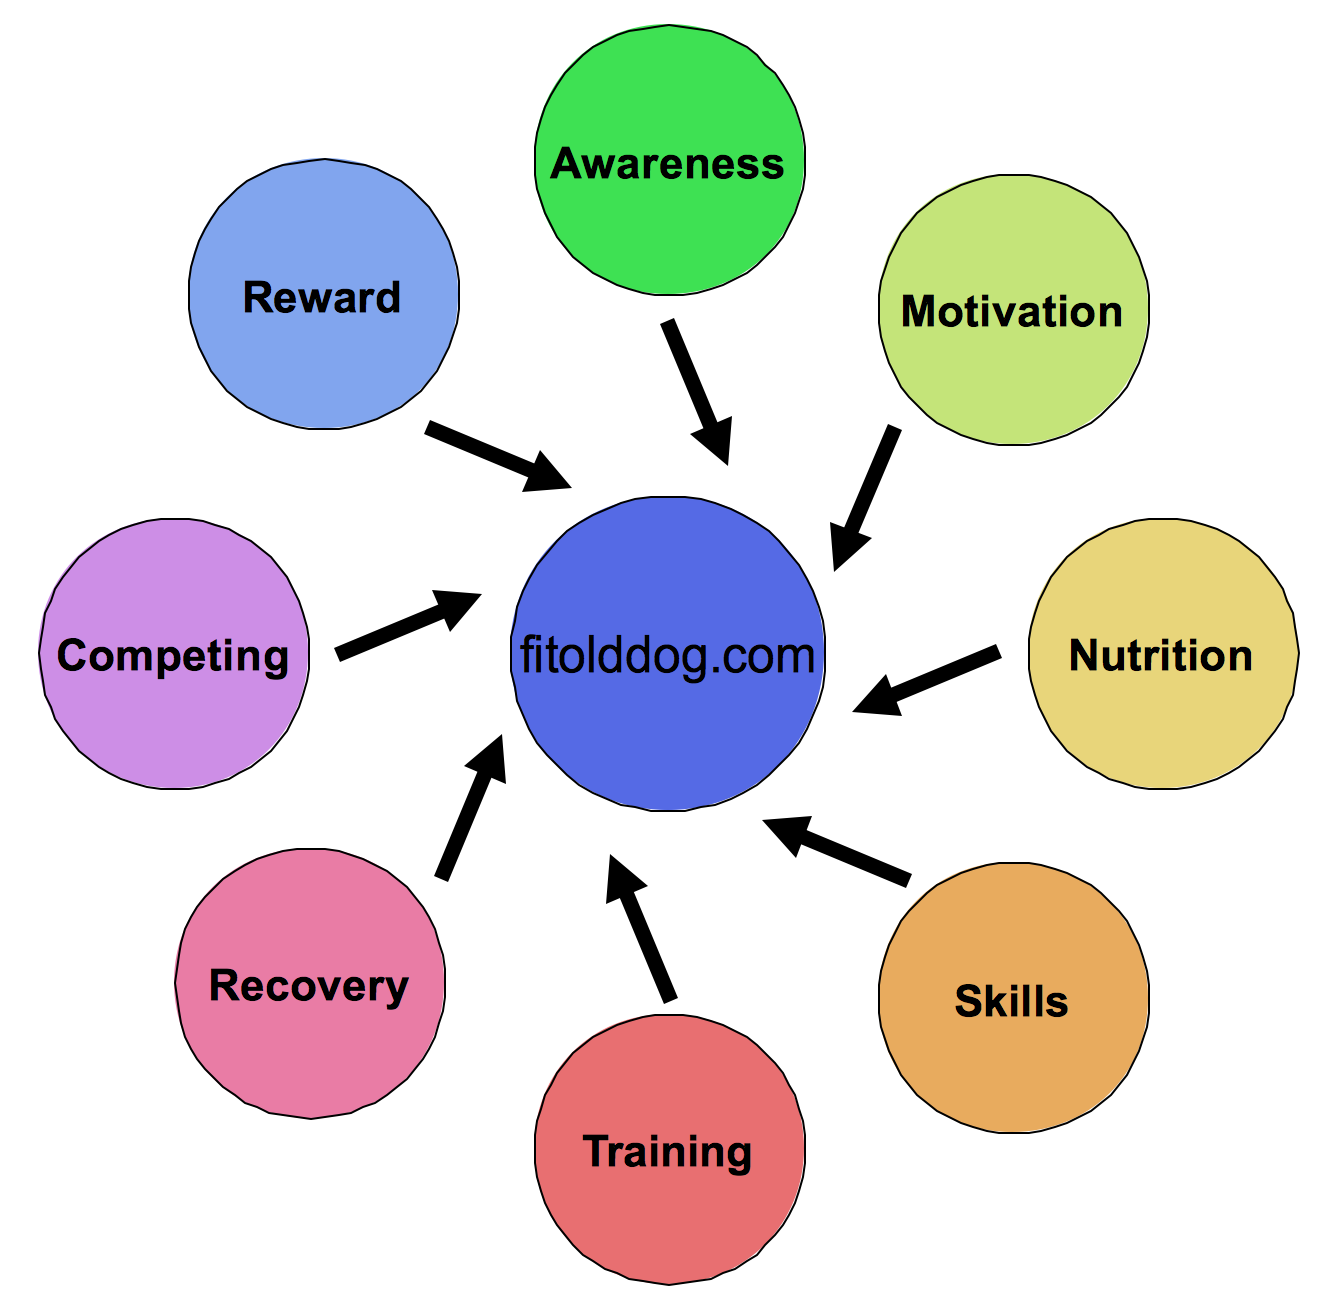 FitOldDog's training wheel